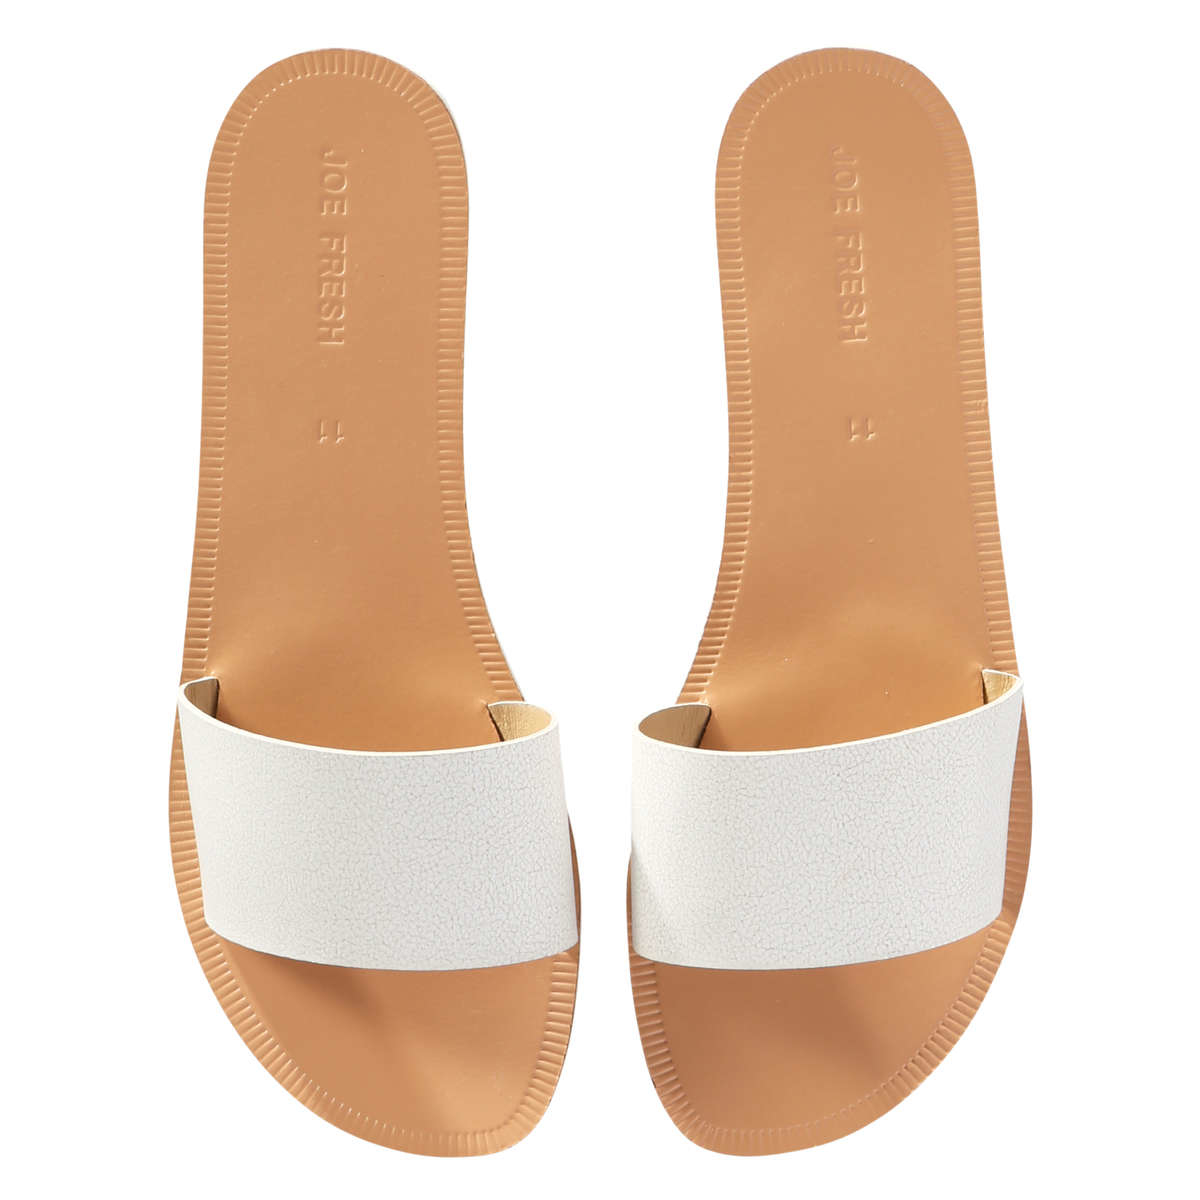 sandals for singles